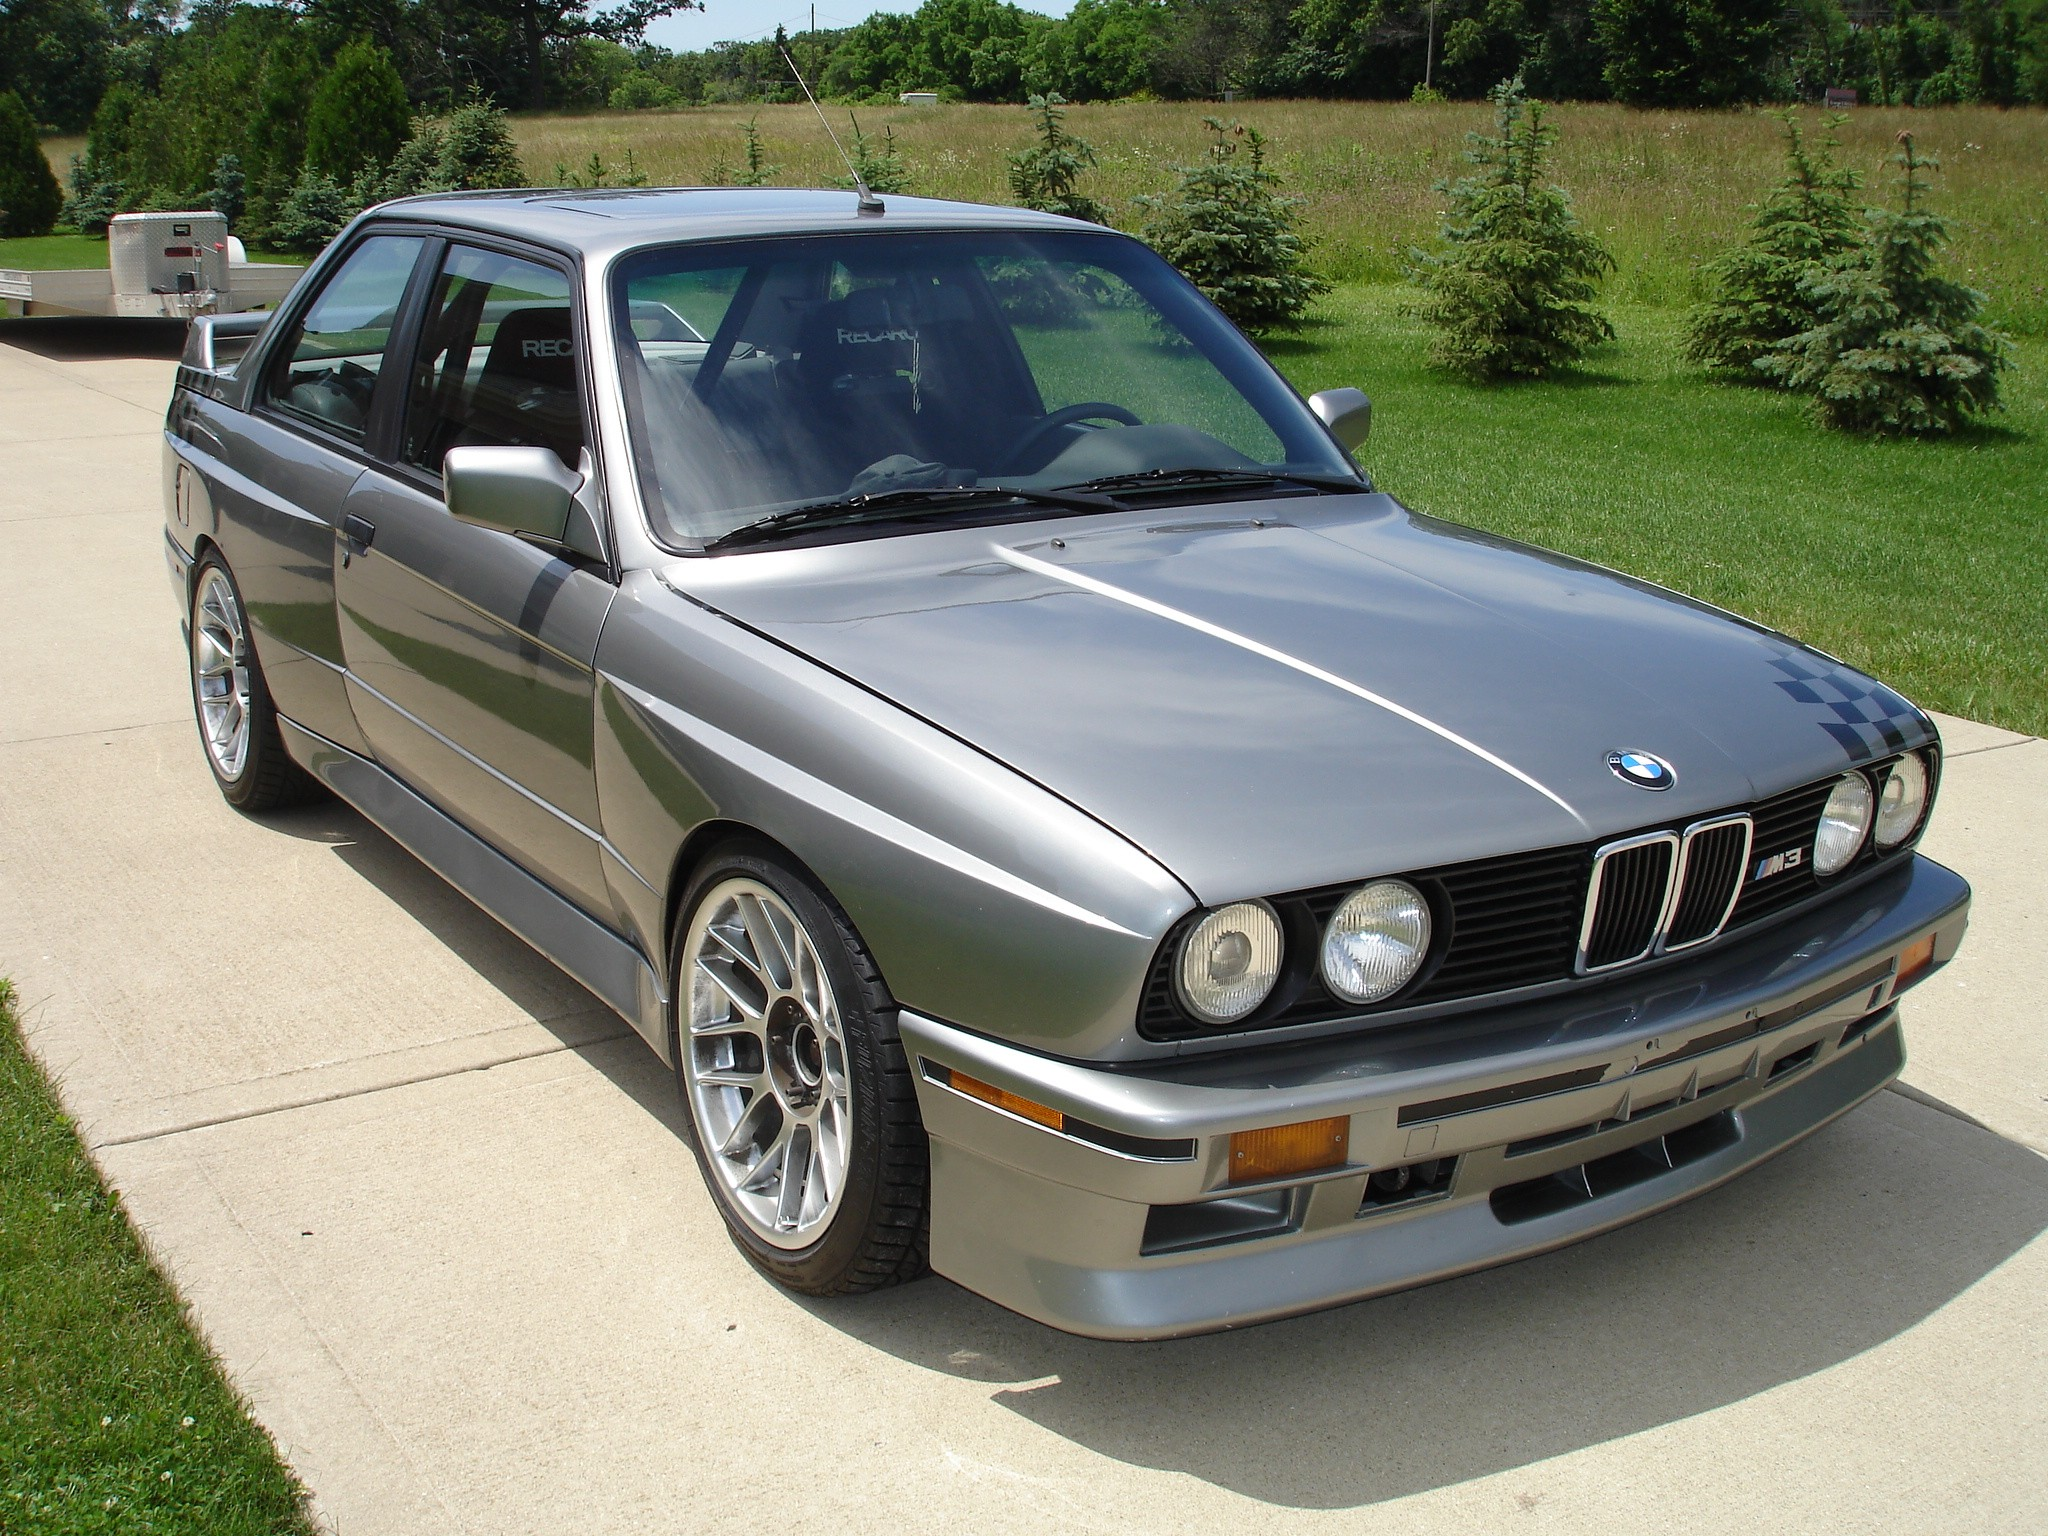 1988 bmw e30 m3 with inline 6 cylinder s52 engine up for grabs in chicago autoevolution. Black Bedroom Furniture Sets. Home Design Ideas